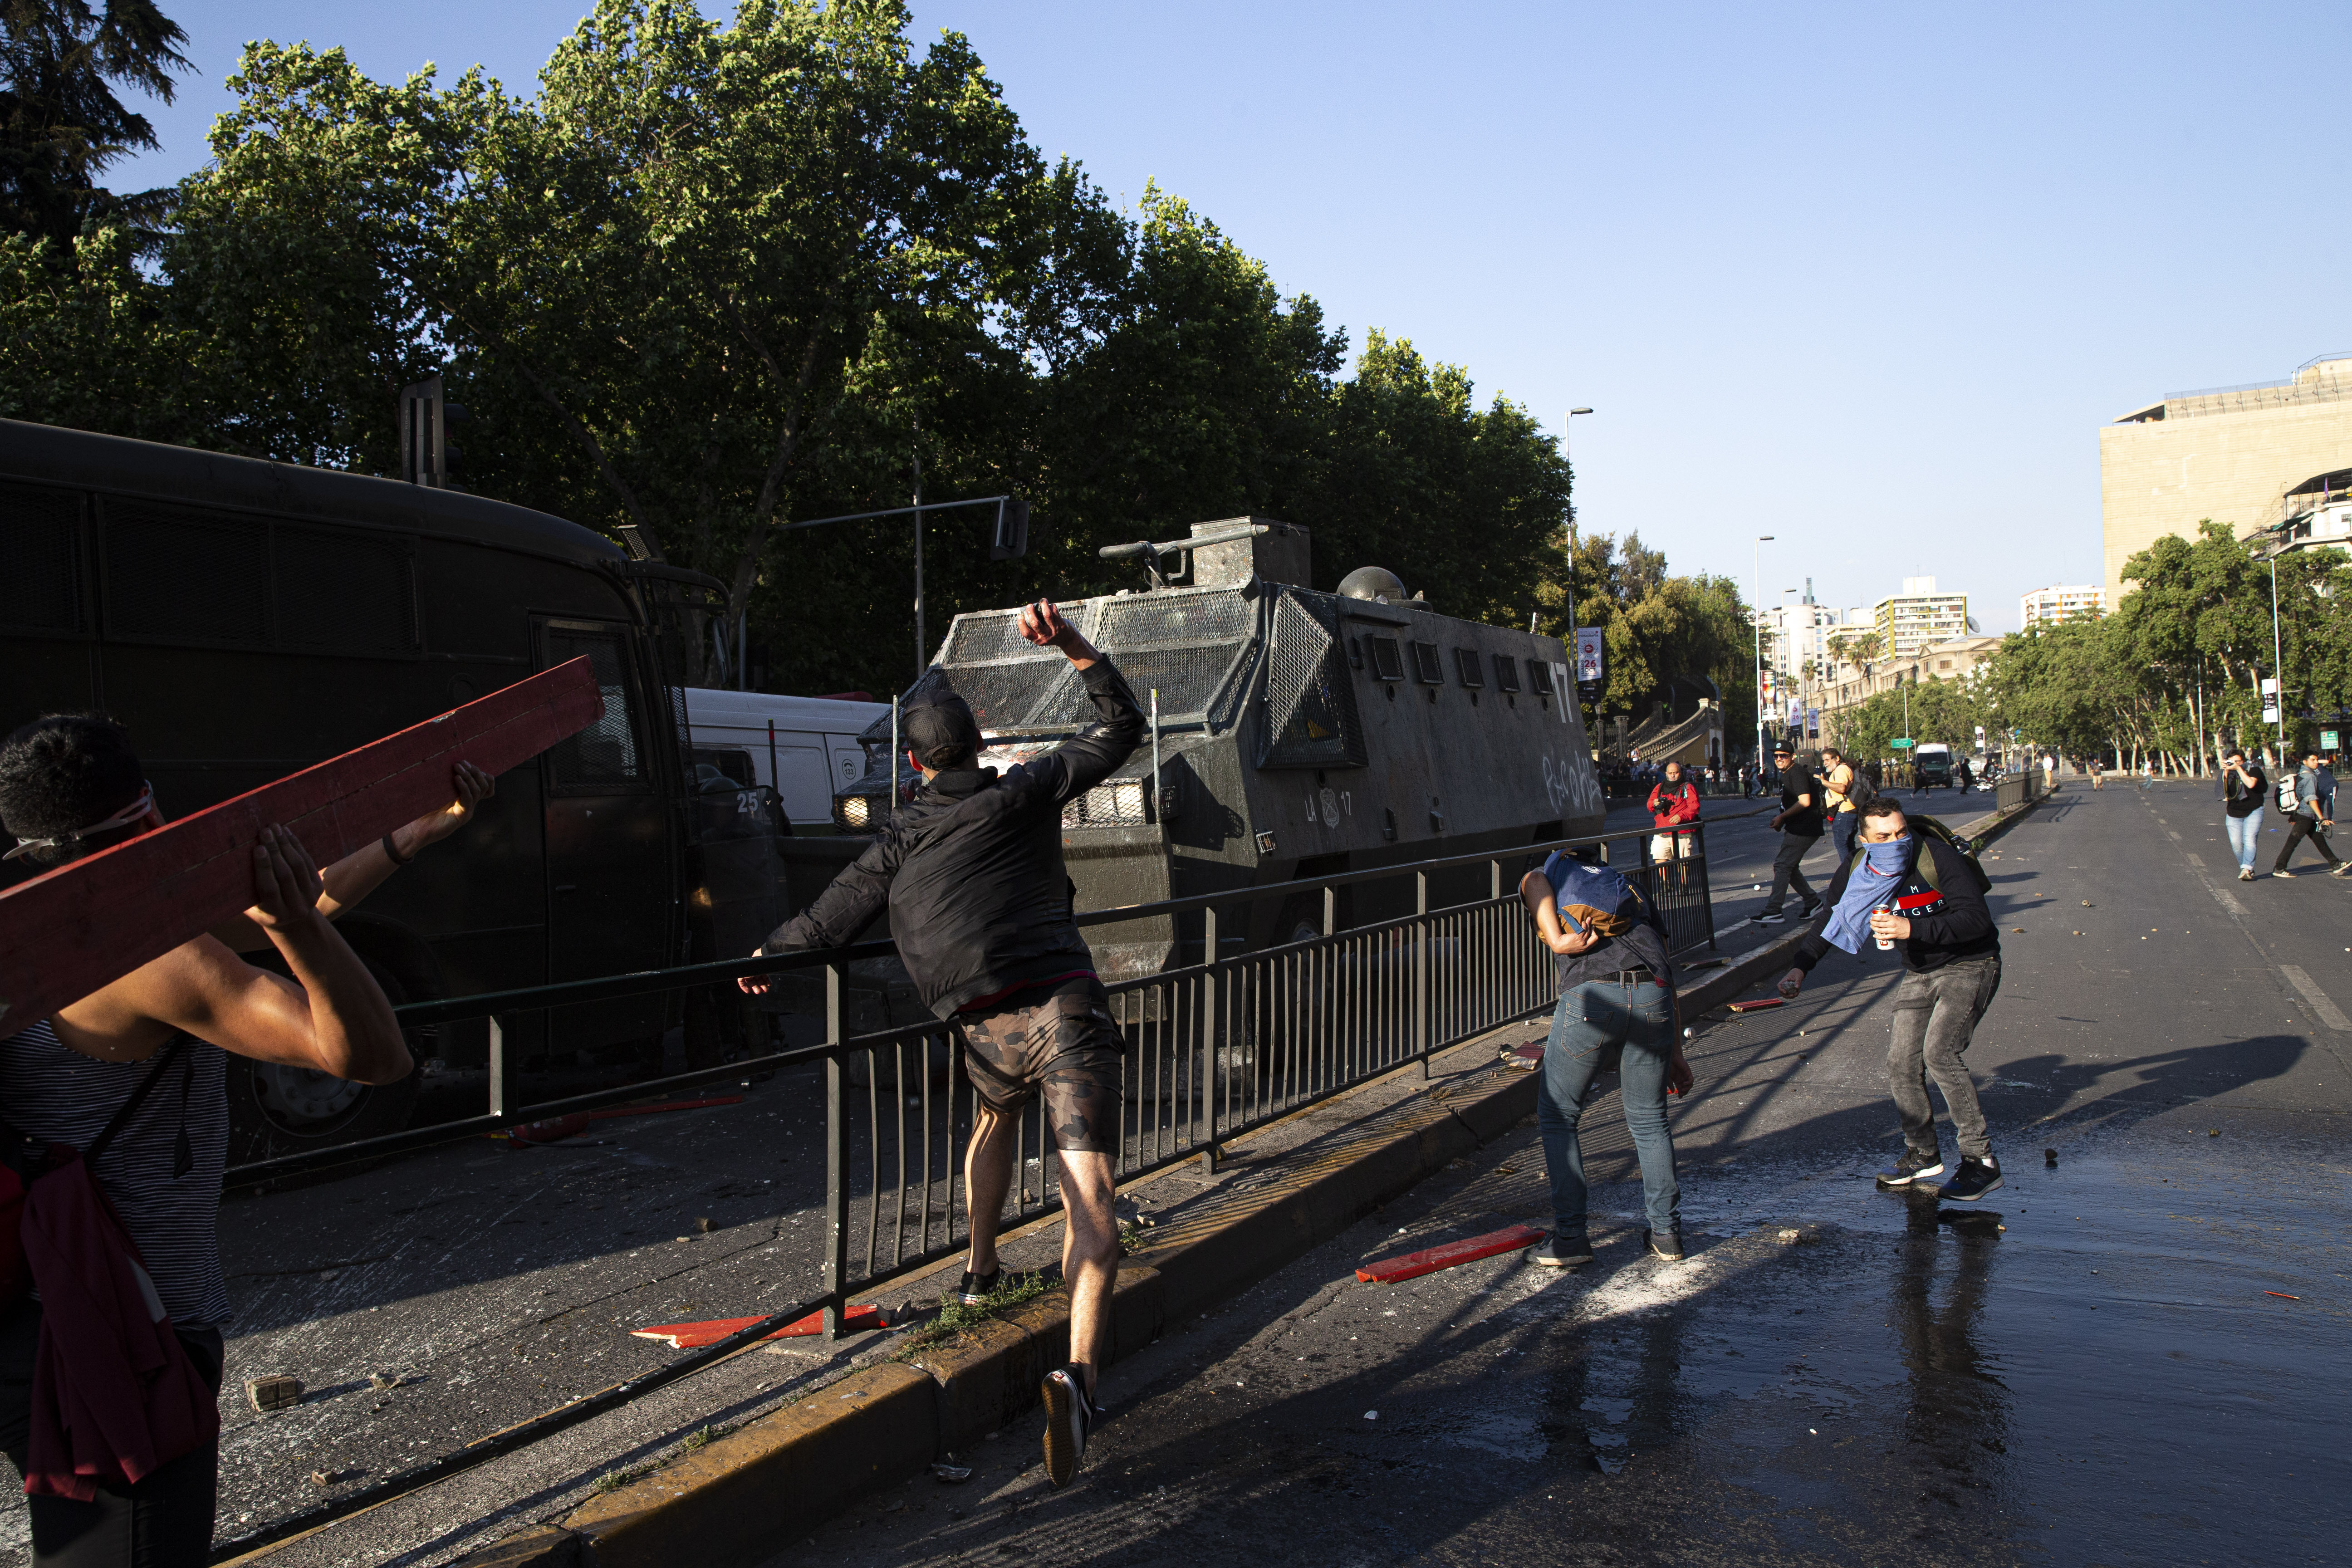 A protester throws a rock at a water cannon during clashes with police in front of the Santa Lucia subway station during a protest against the rising cost of subway and bus fares, in Santiago, Friday, Oct. 18, 2019. (AP Photo/Esteban Felix)